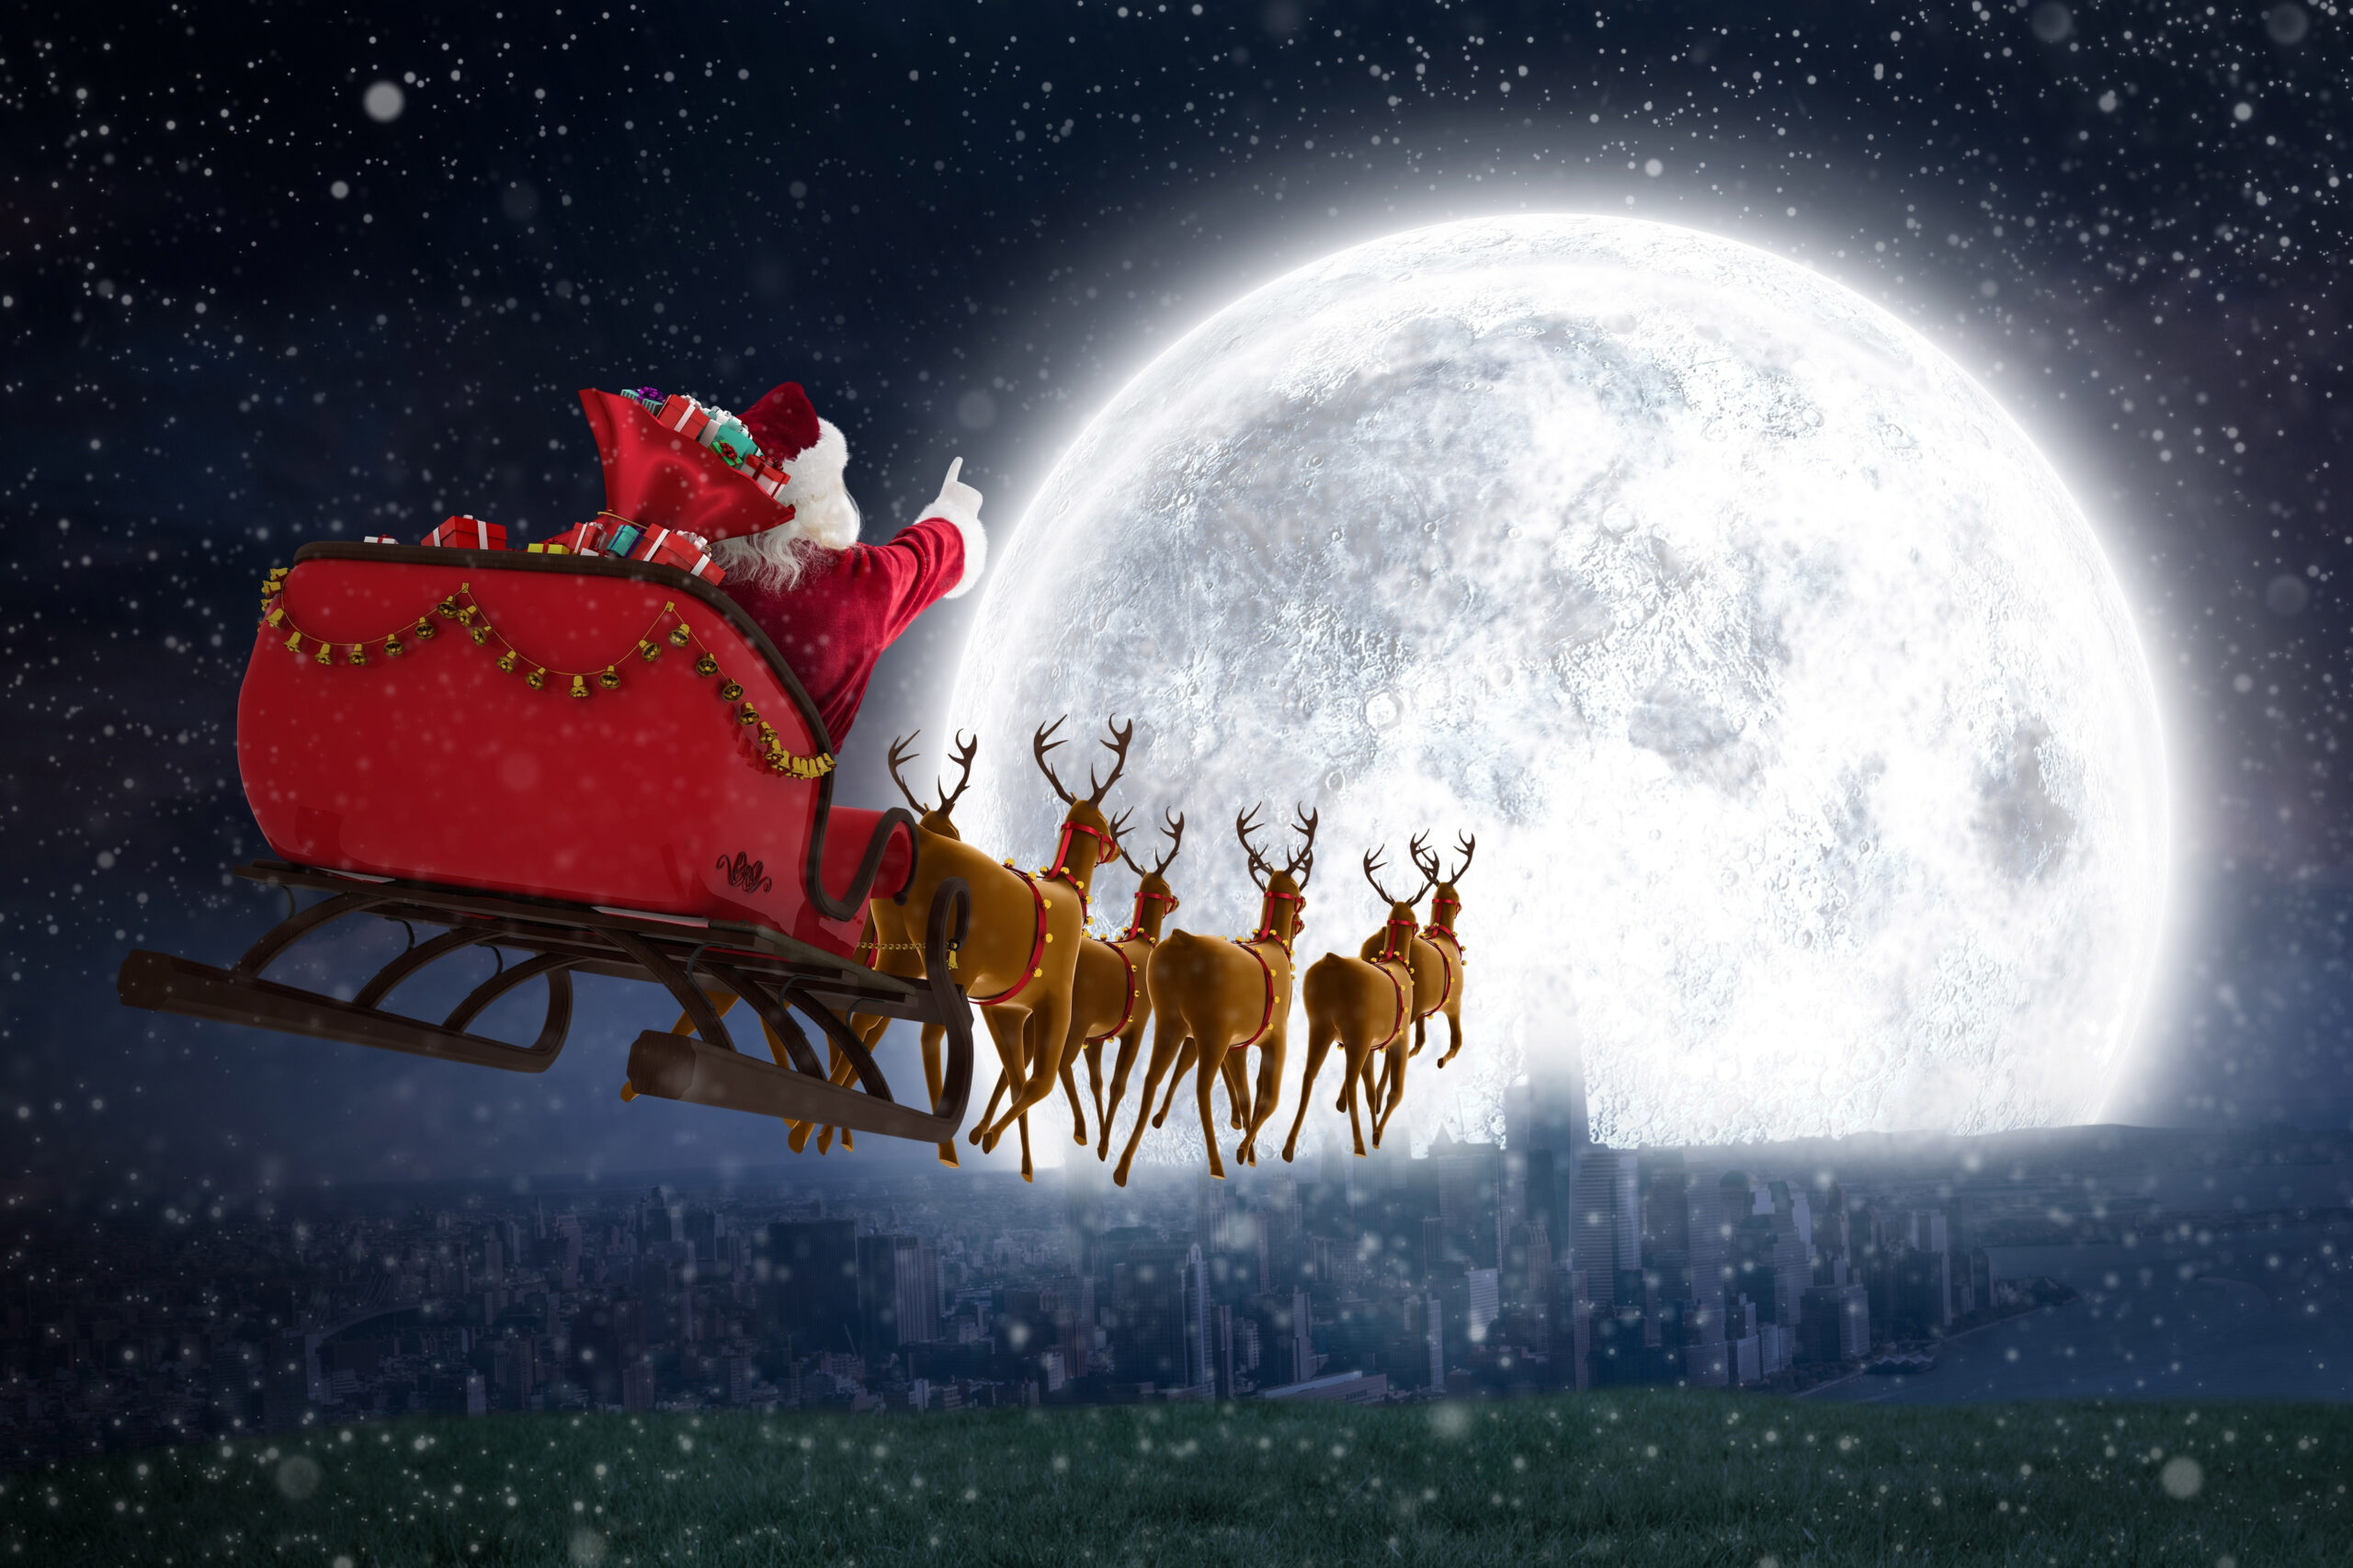 Ring a bell for Santa at 6pm on Christmas Eve